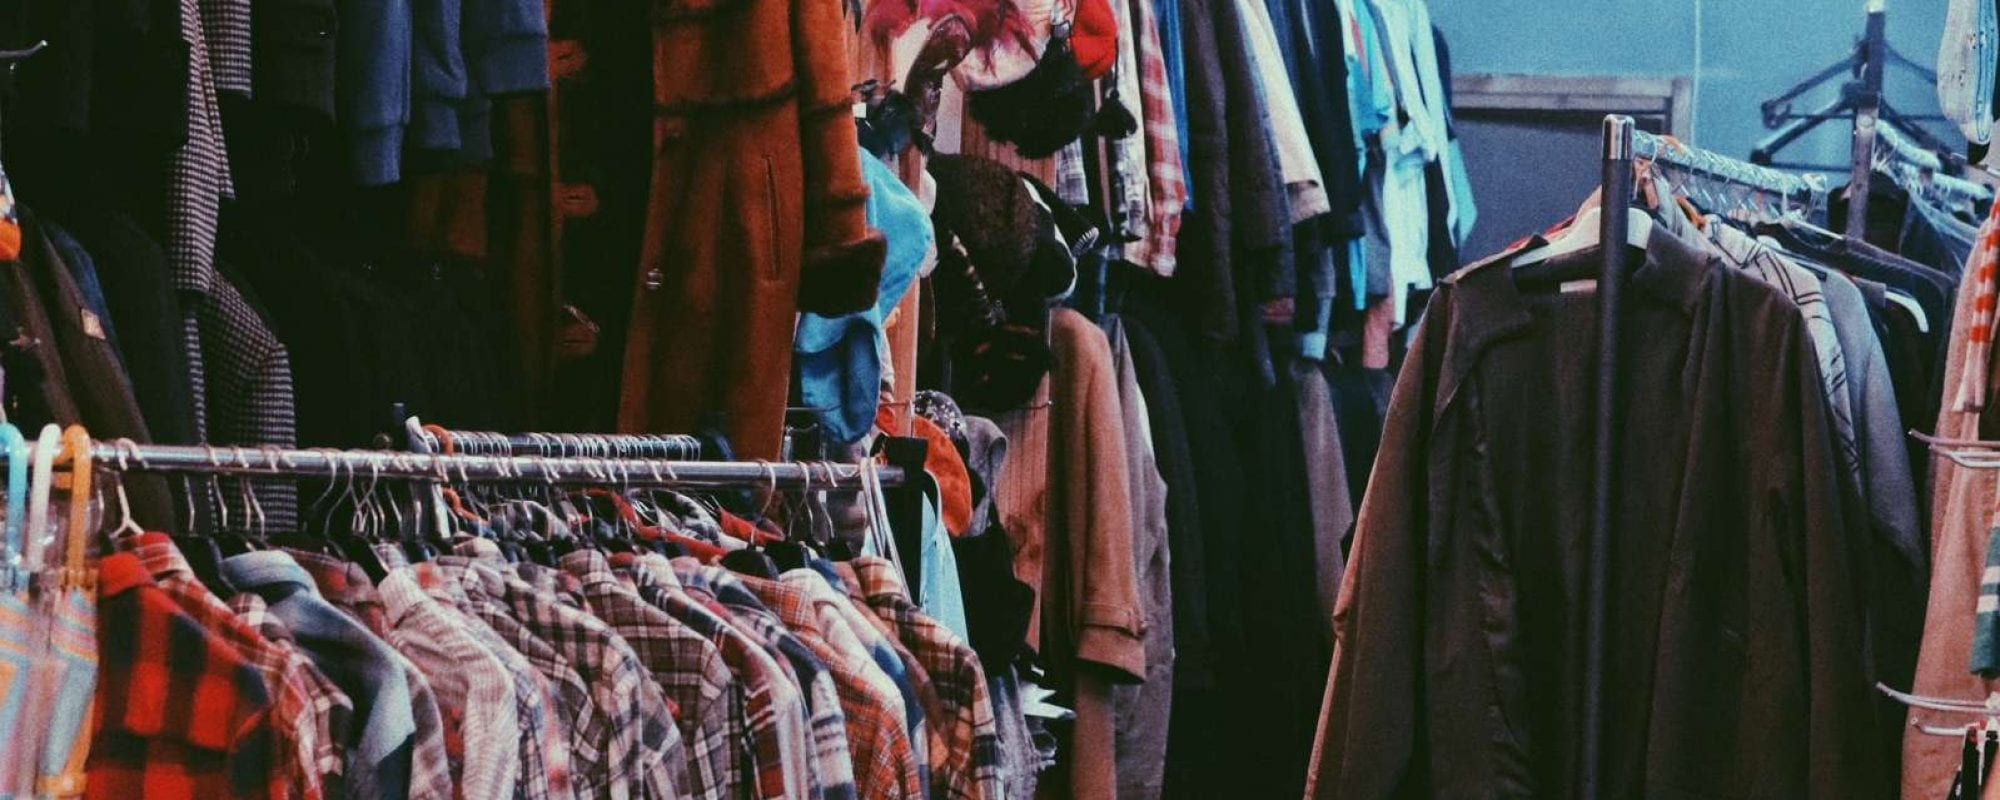 Clothes hanging in a thrift shop